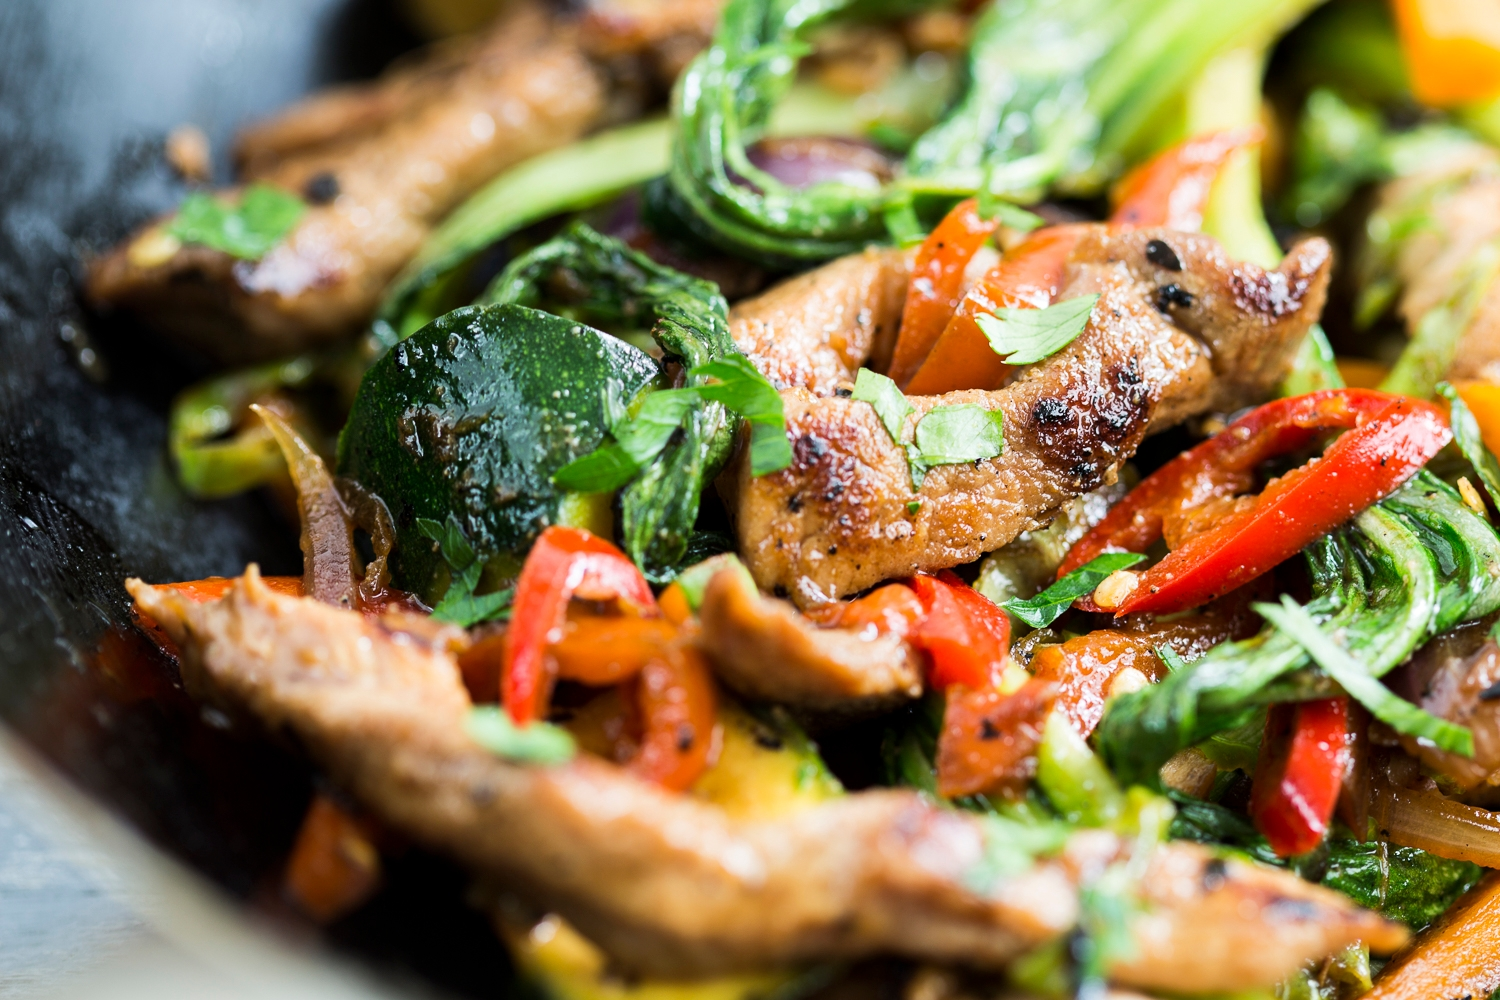 Pork stir fry strips